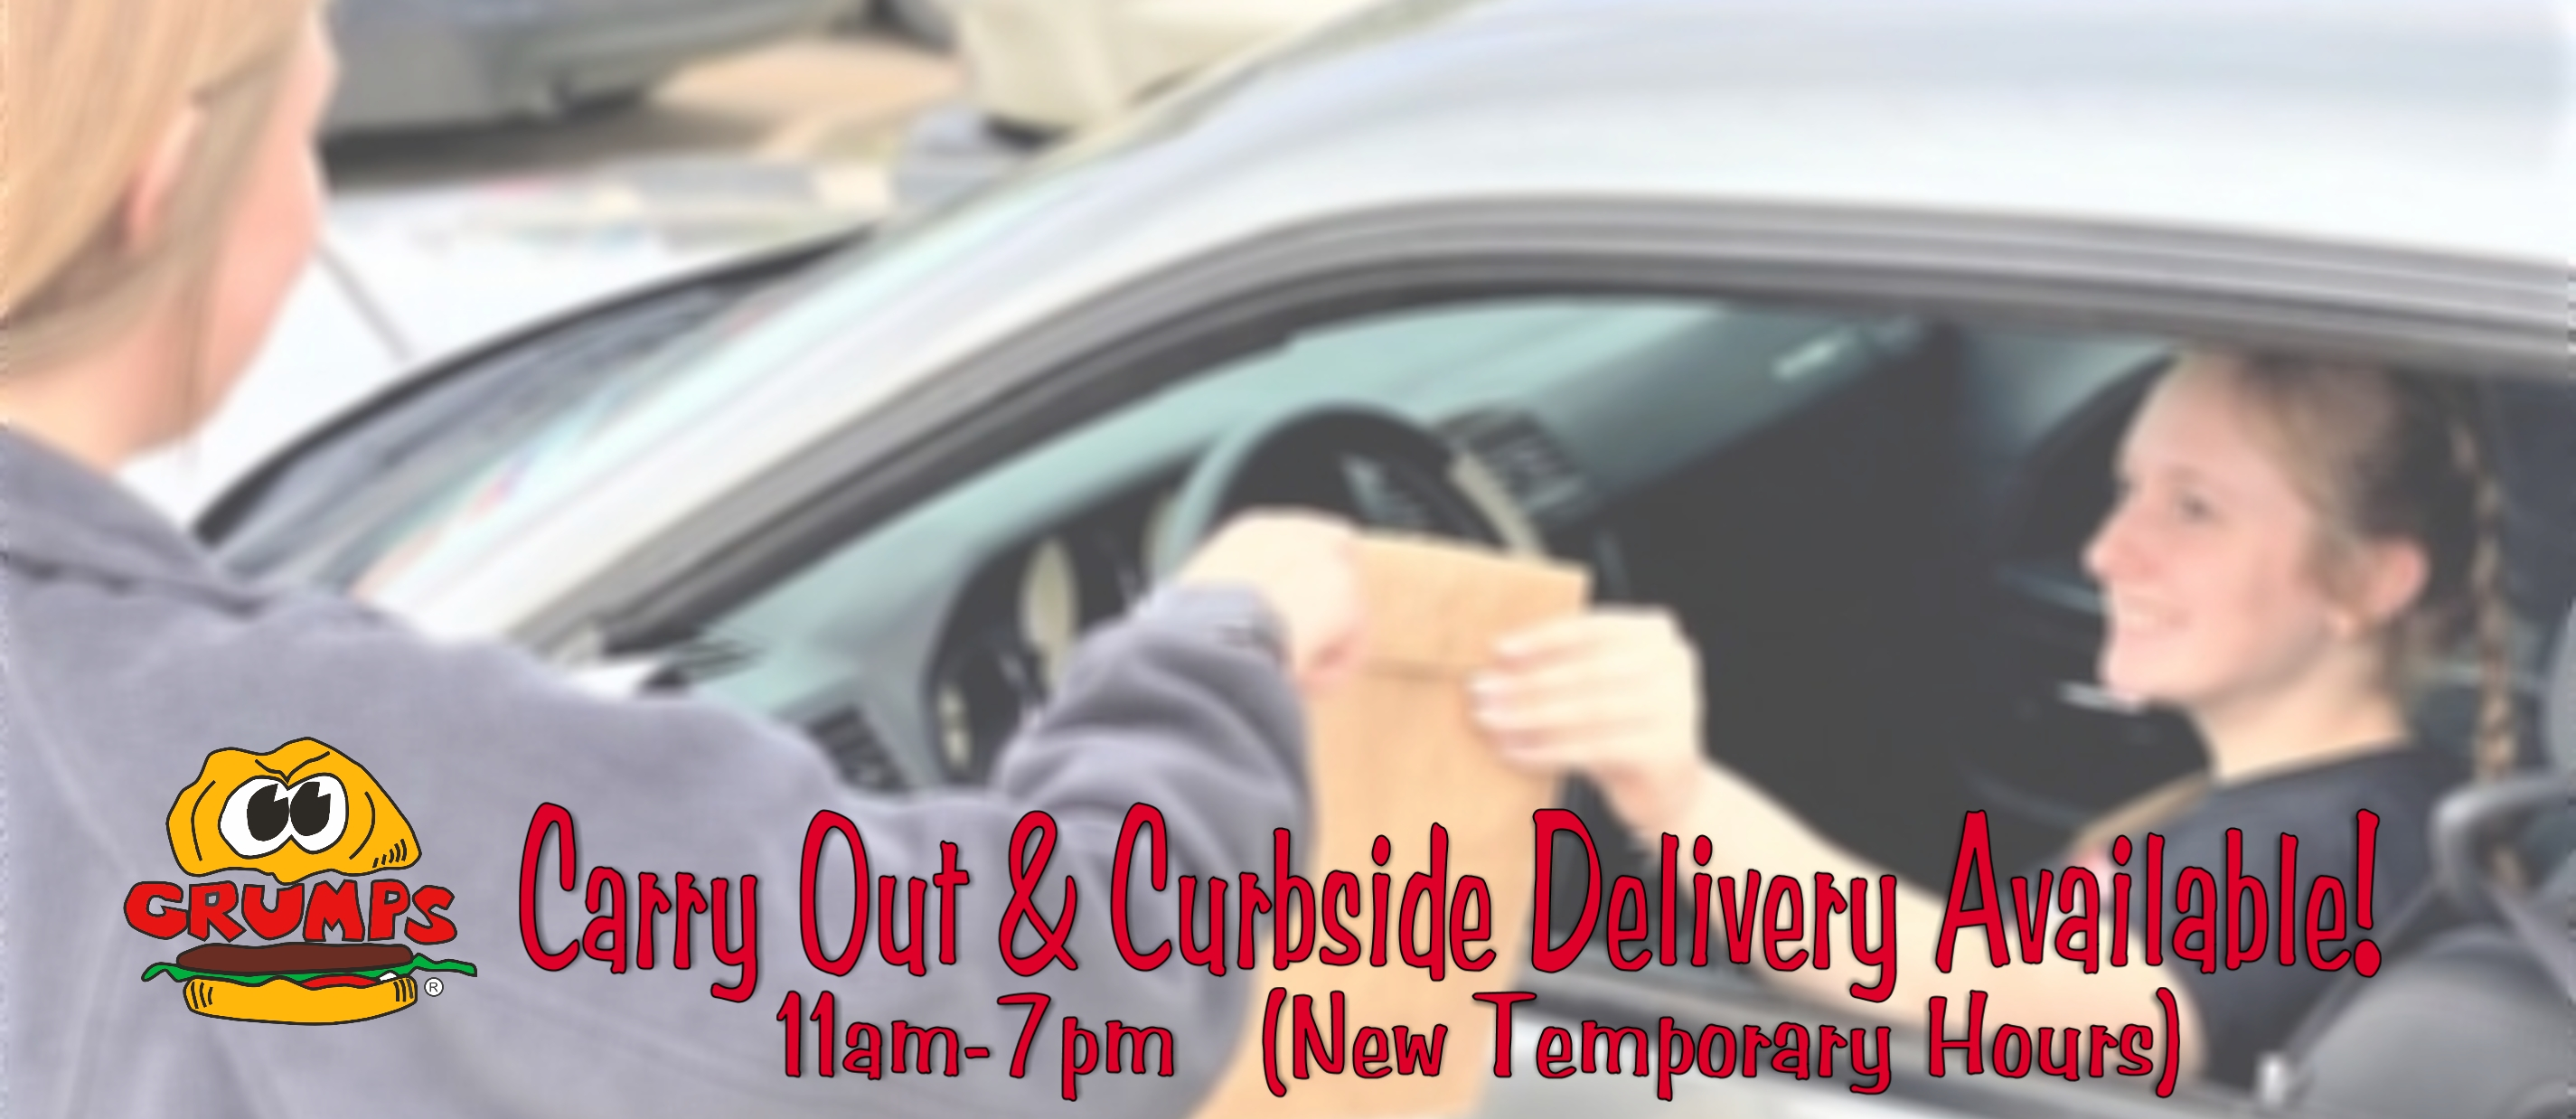 Grumps is offering Carry Out & Curbside Delivery at all locations